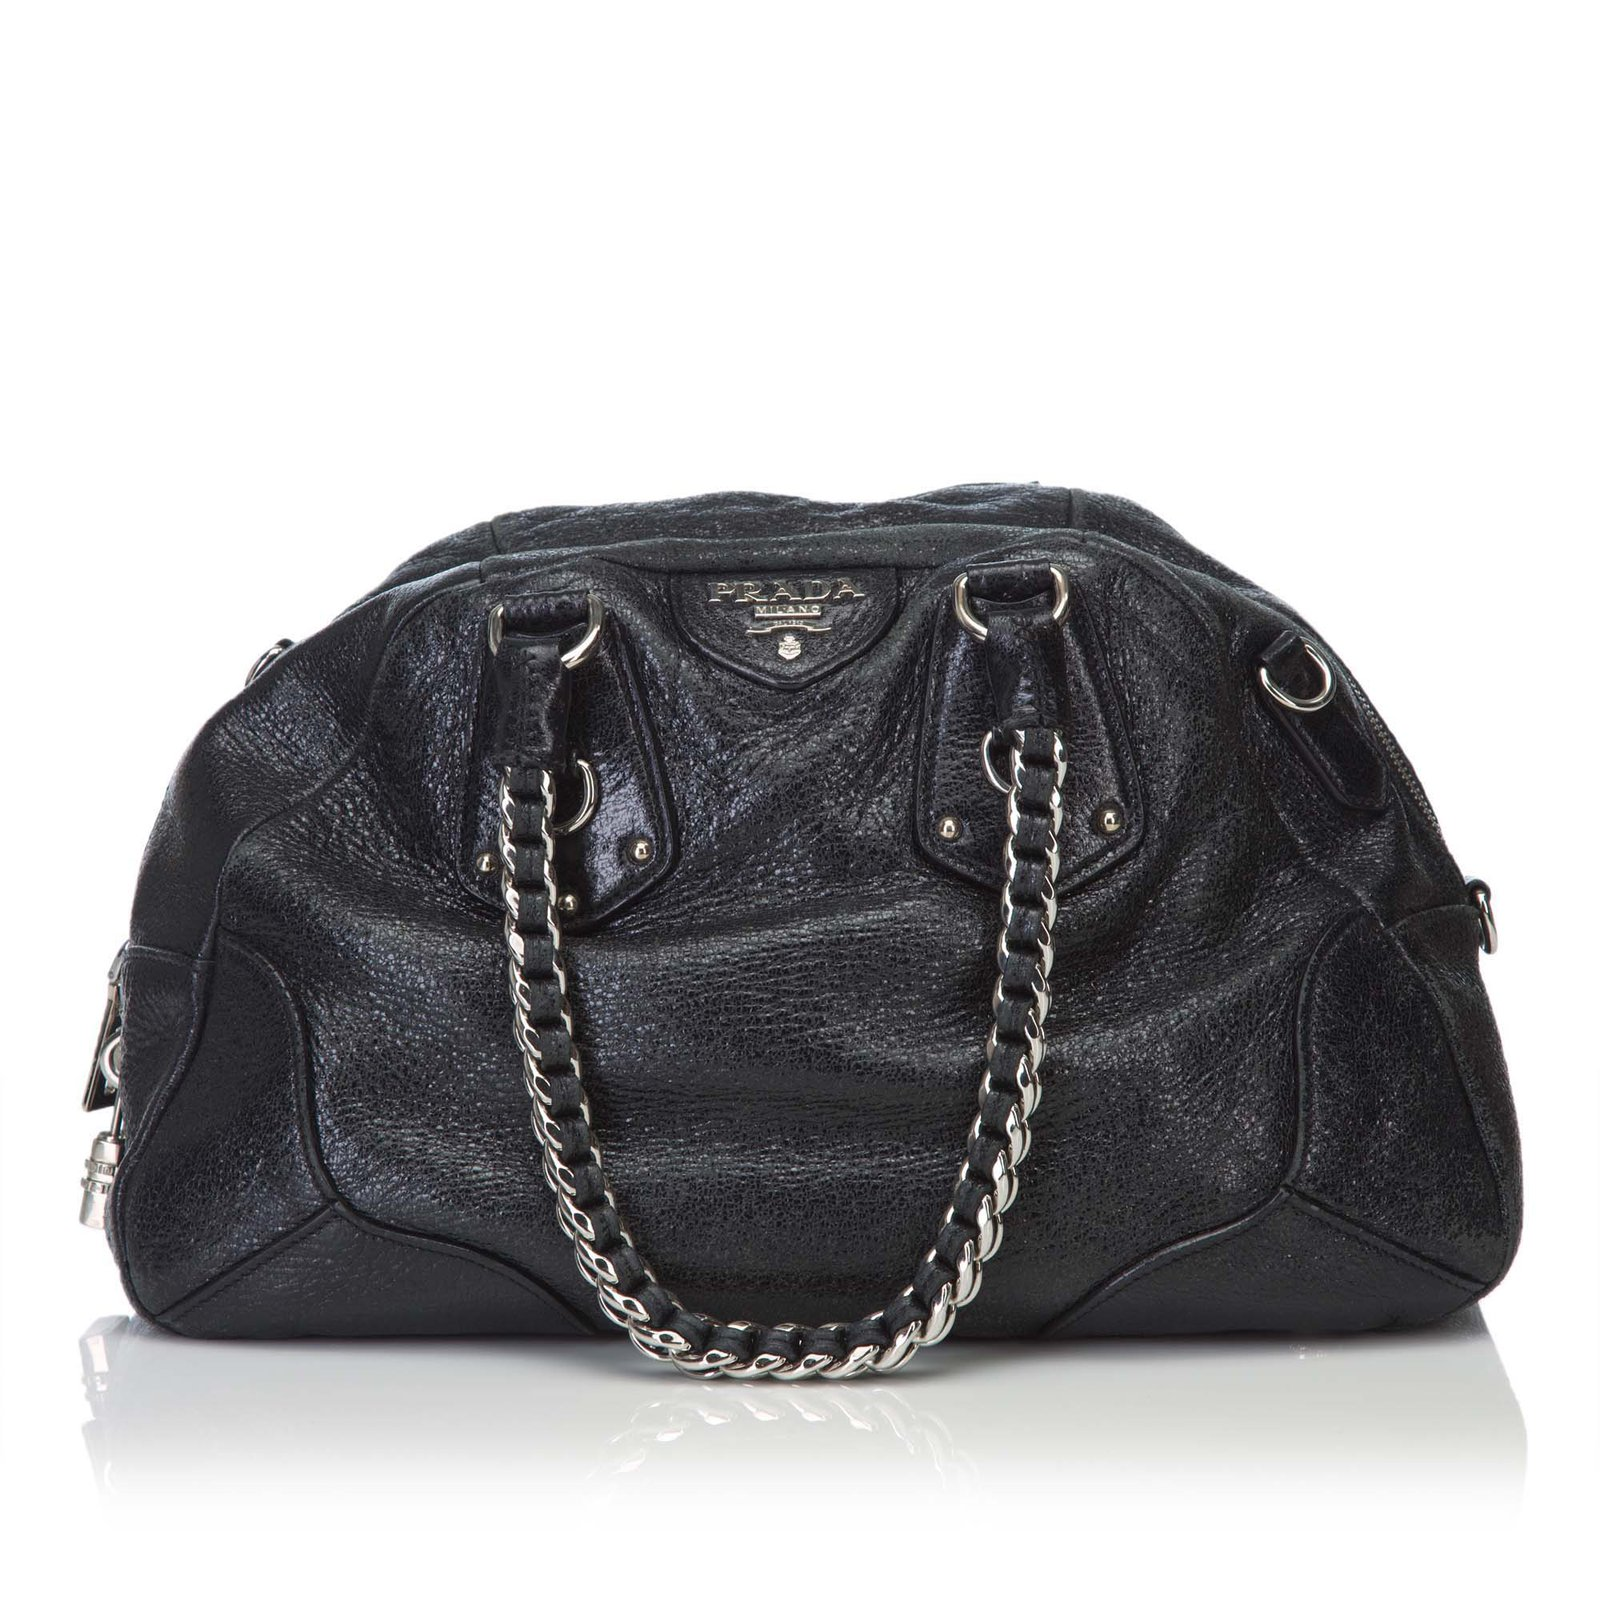 053d6ebae573b8 ... discount code for prada leather chain shoulder bag handbags  leatherother black ref.82097 14011 38244